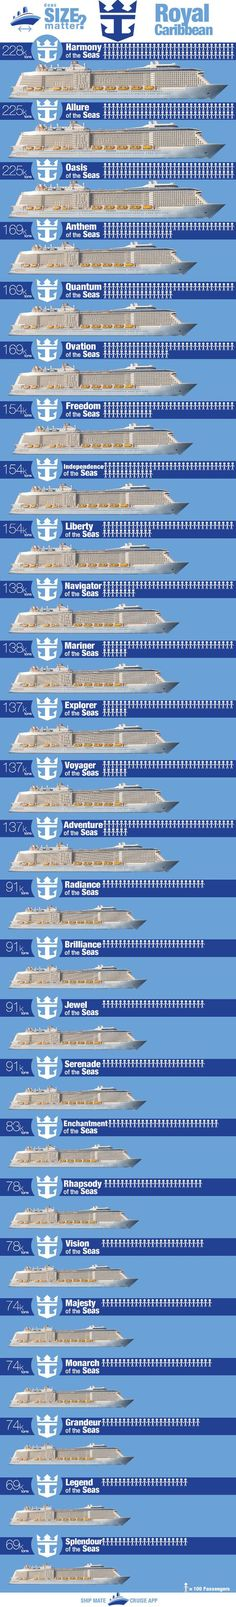 Royal Caribbean Ships by Size [Infographic] : Does SIZE Matter? Royal Caribbean Ships by Size [Infographic] : Anthem of the Seas Croisière Royal Caribbean, Crucero Royal Caribbean, Caribbean Cruise Line, Best Cruise, Cruise Tips, Cruise Travel, Cruise Vacation, Cozumel Cruise, Vacation List